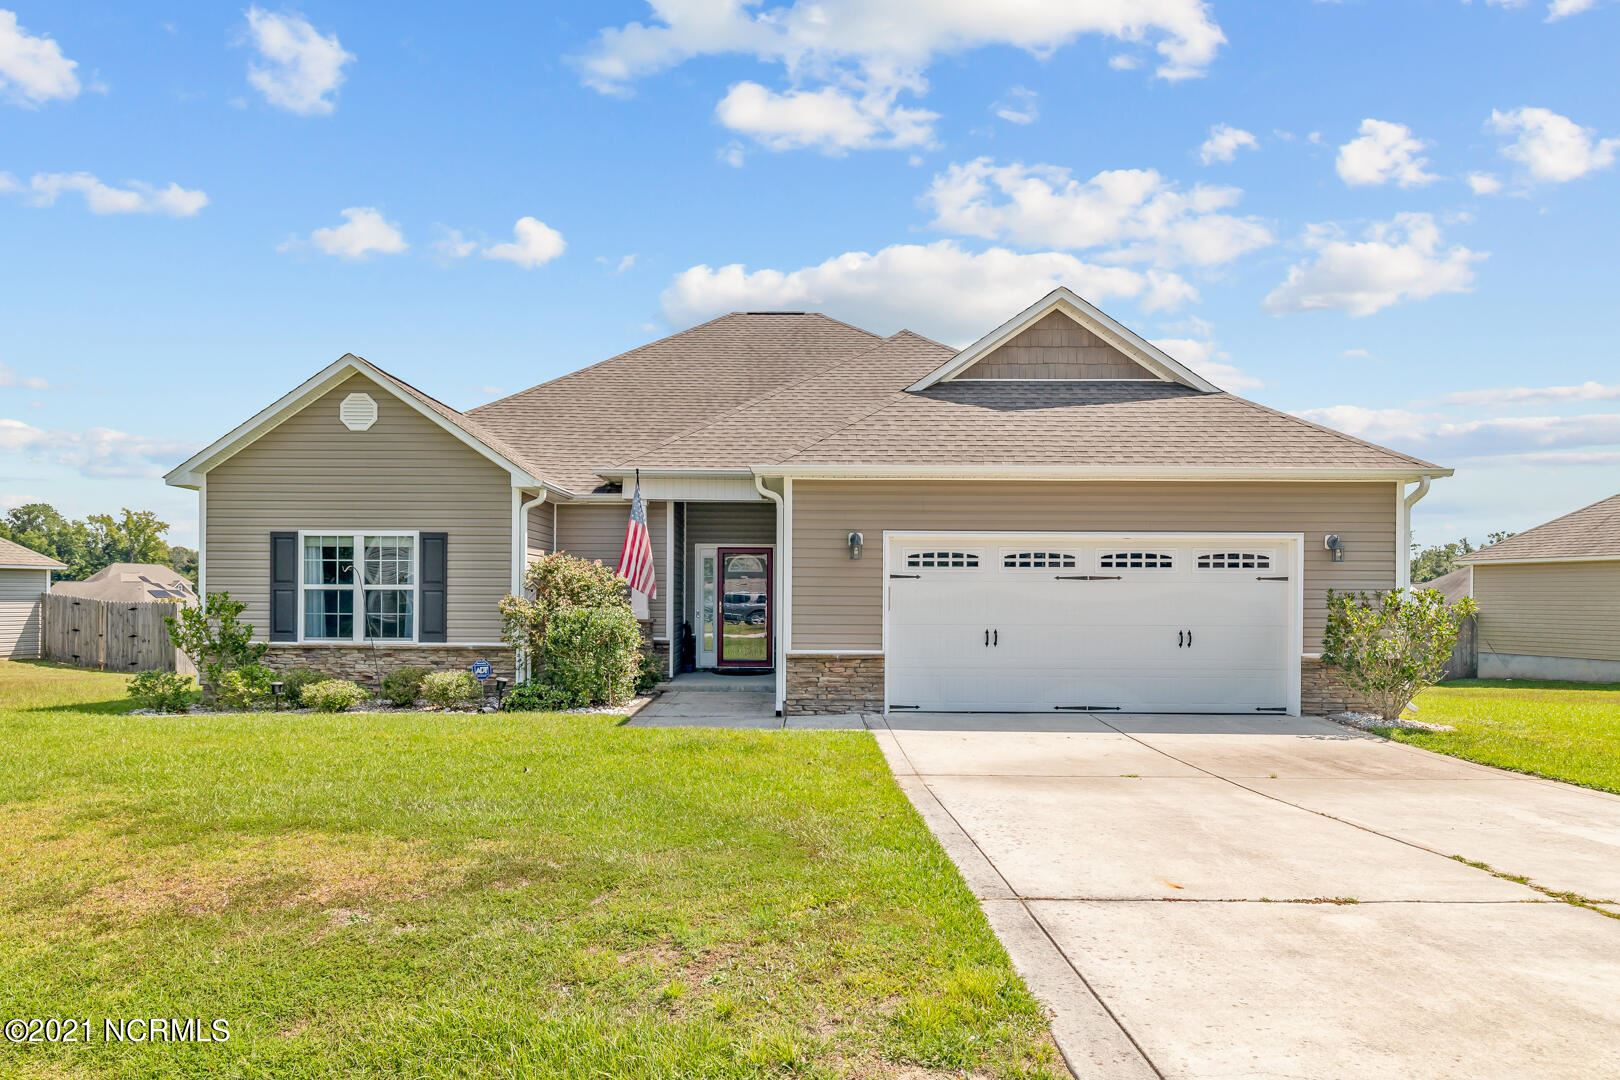 Photo of 116 Prelude Drive, Richlands, NC 28574 (MLS # 100289856)